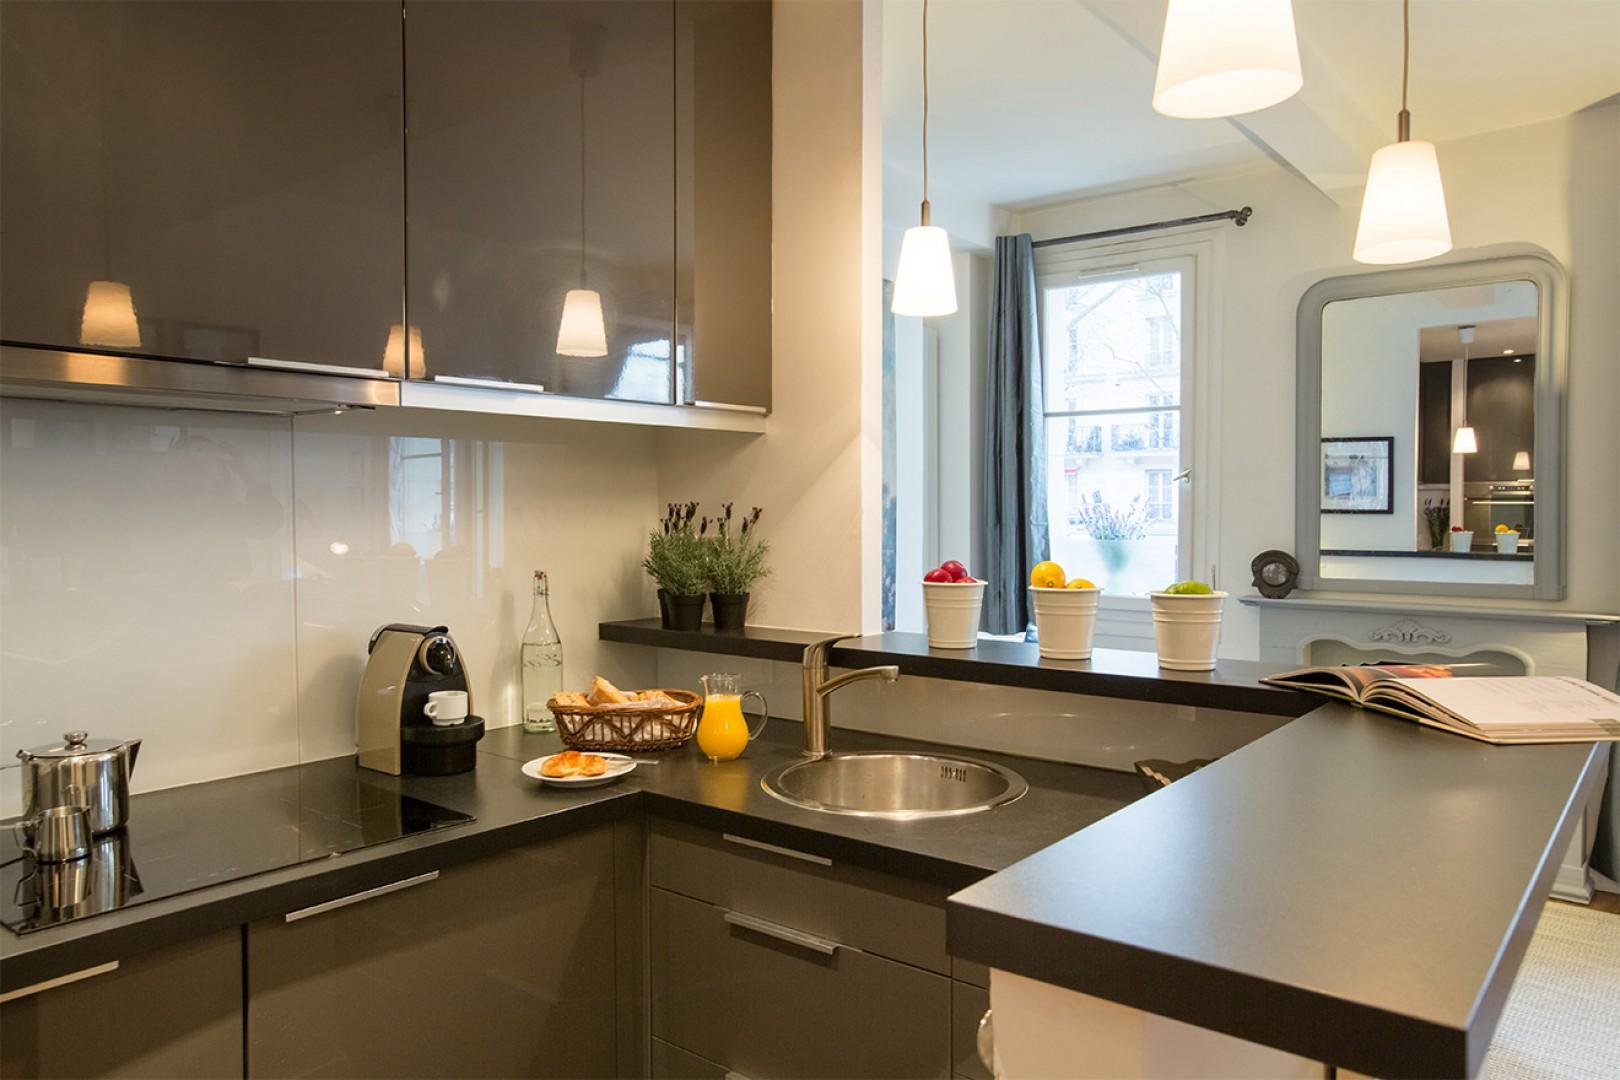 Preparing meals at home is a pleasure in the beautiful modern kitchen.